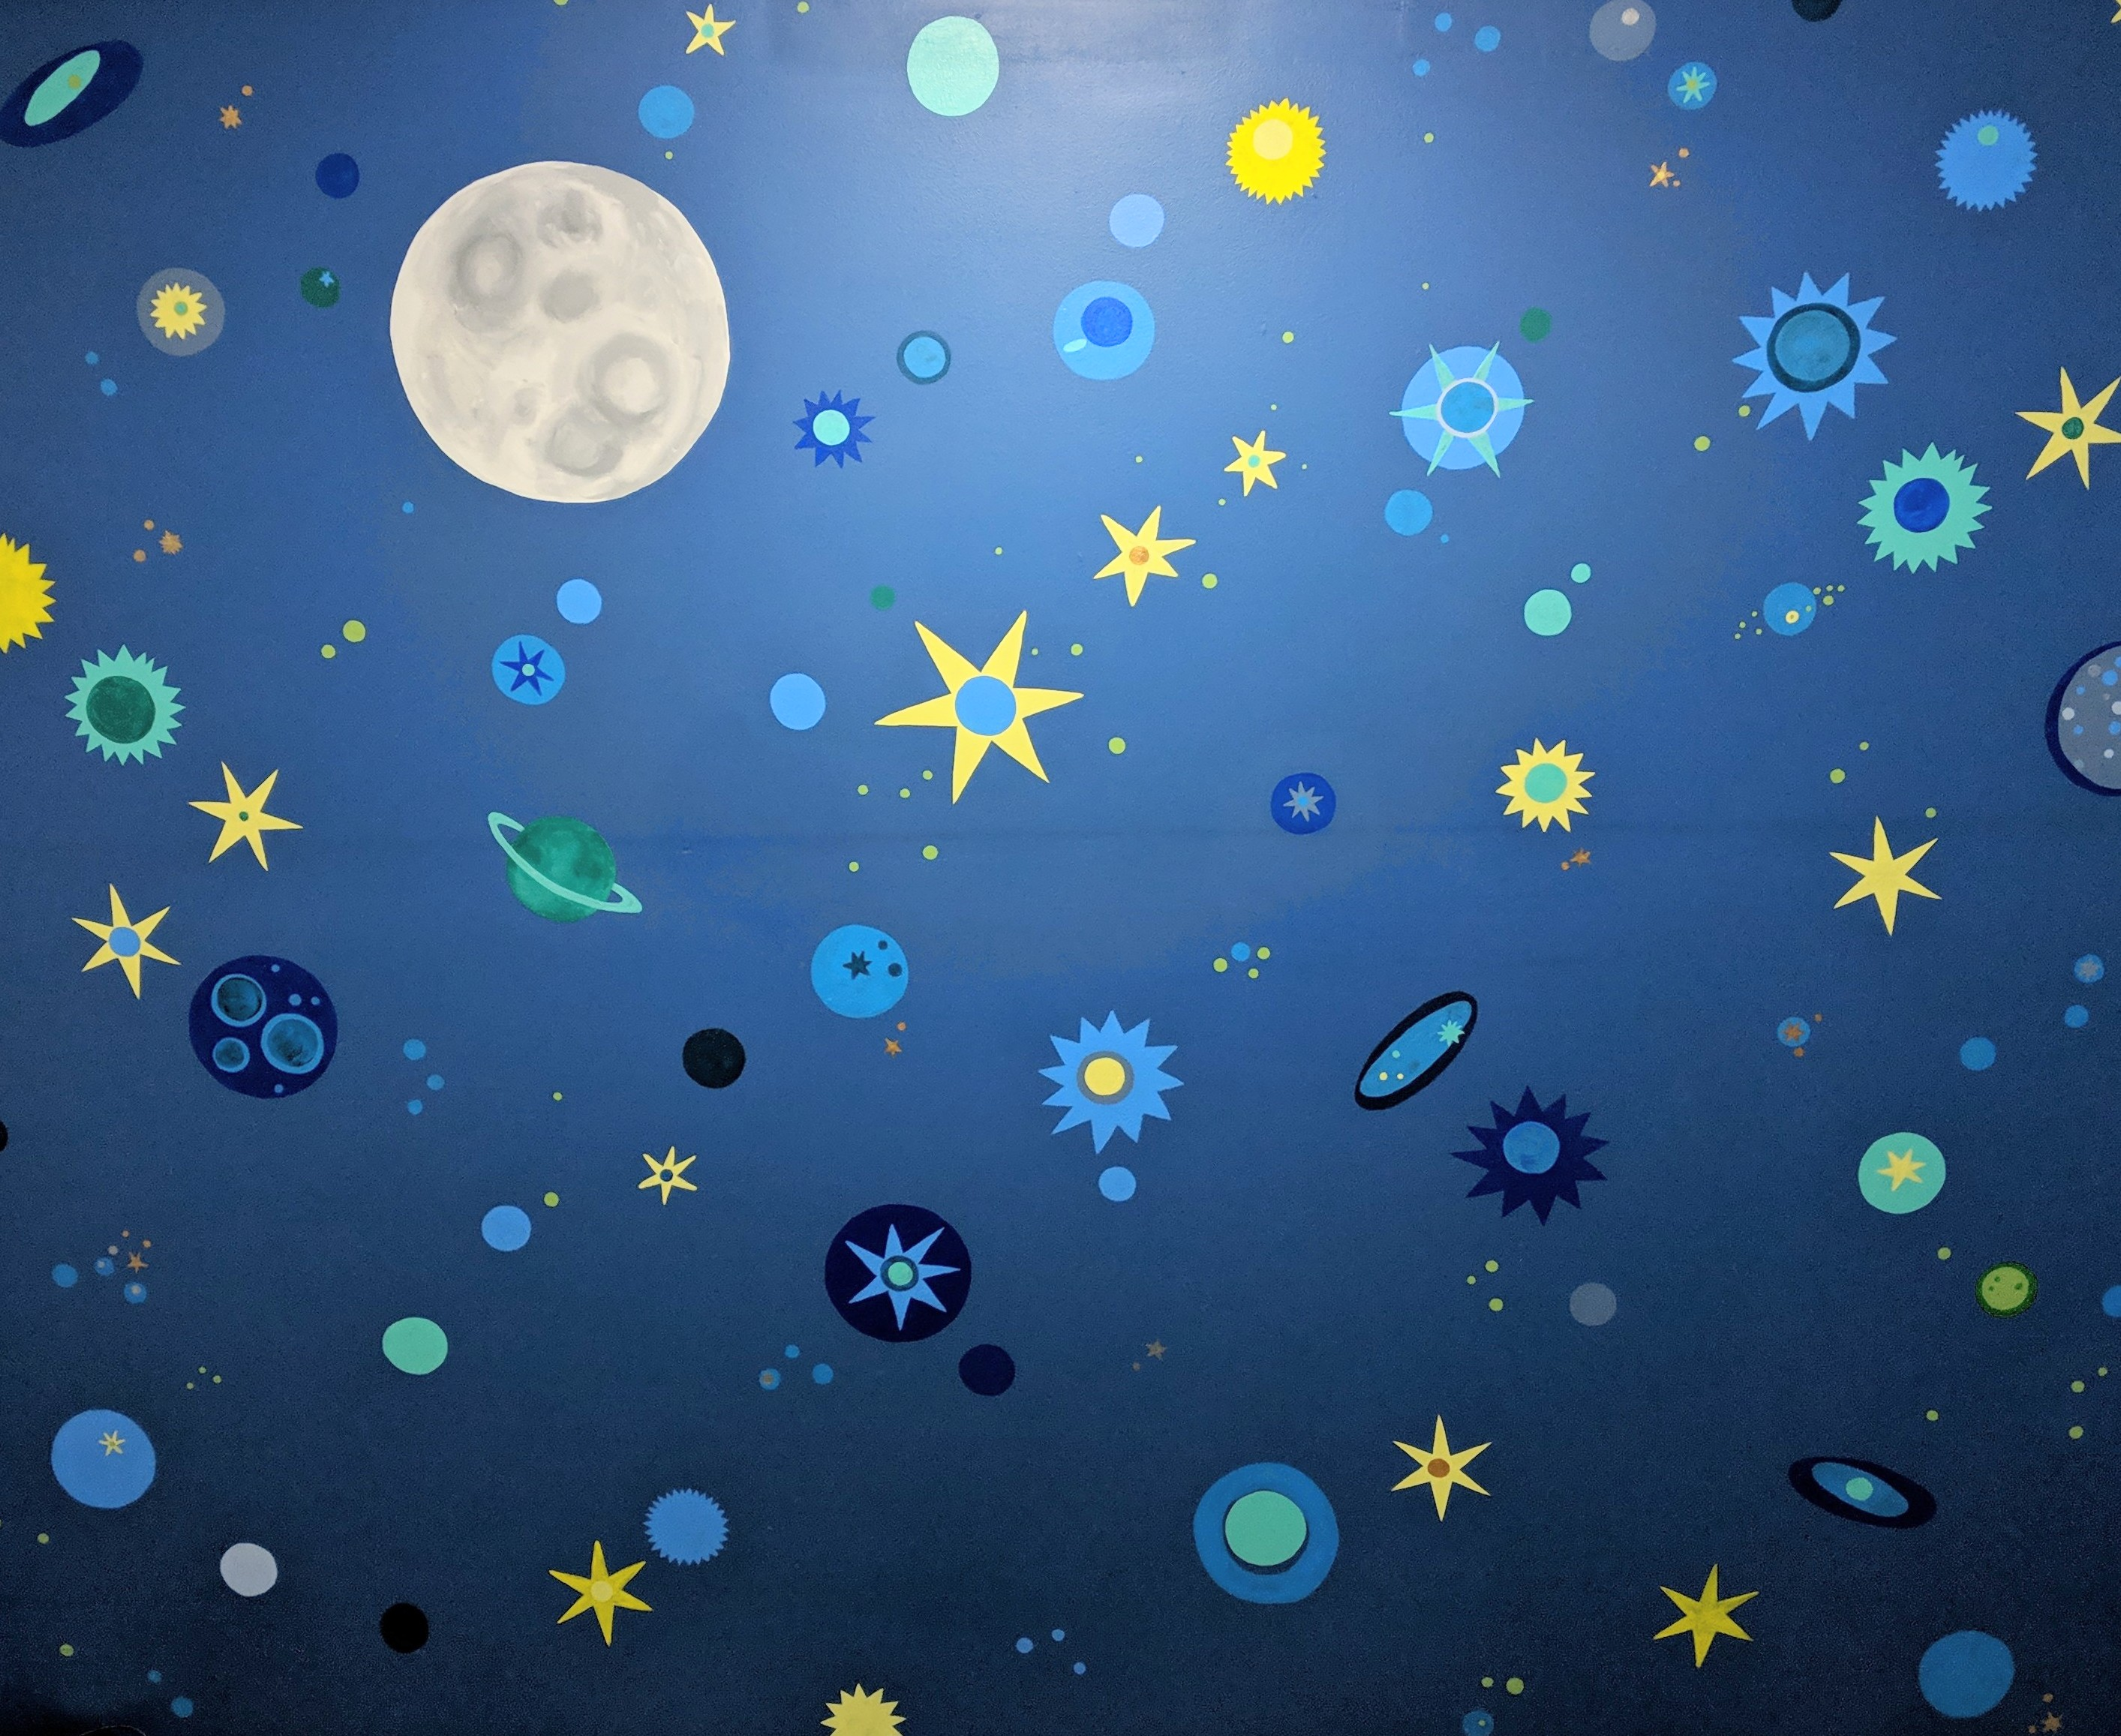 Moon, Stars, Planets and Galaxies Mural Art